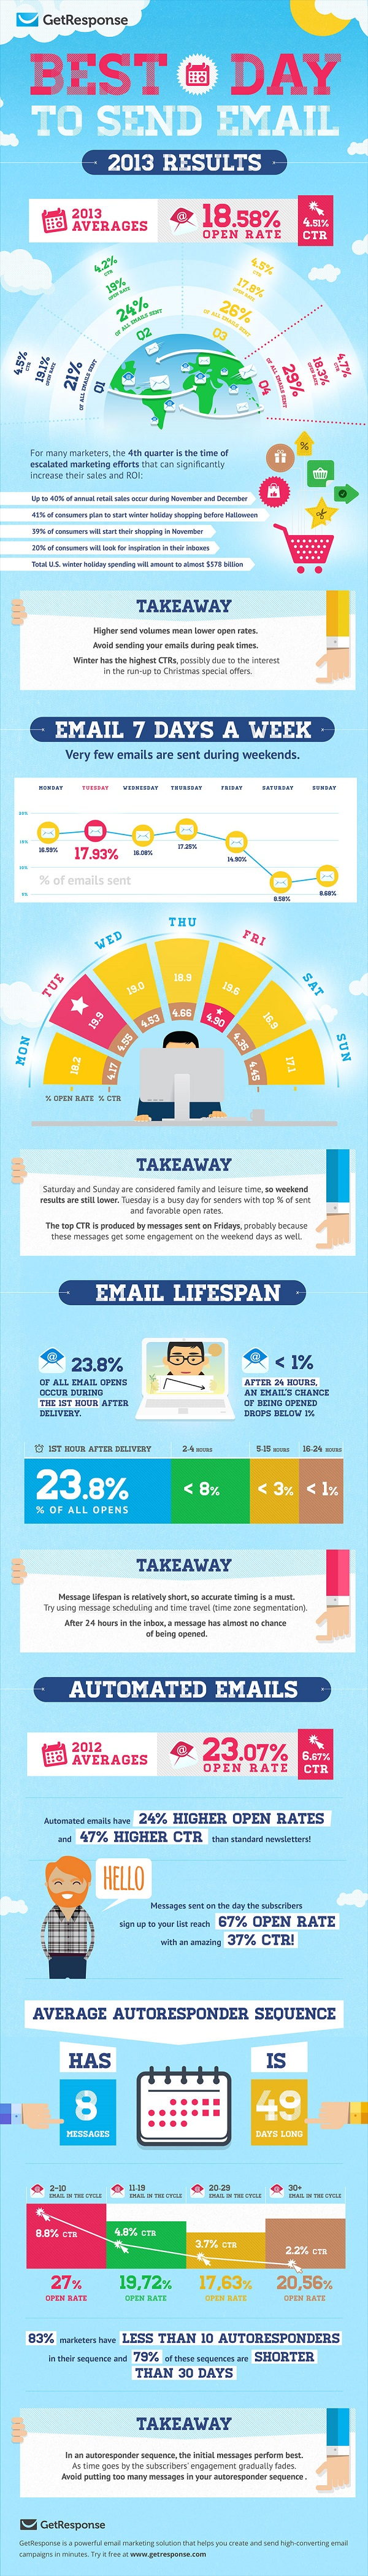 GetResponse: The Best Day to Send an Email